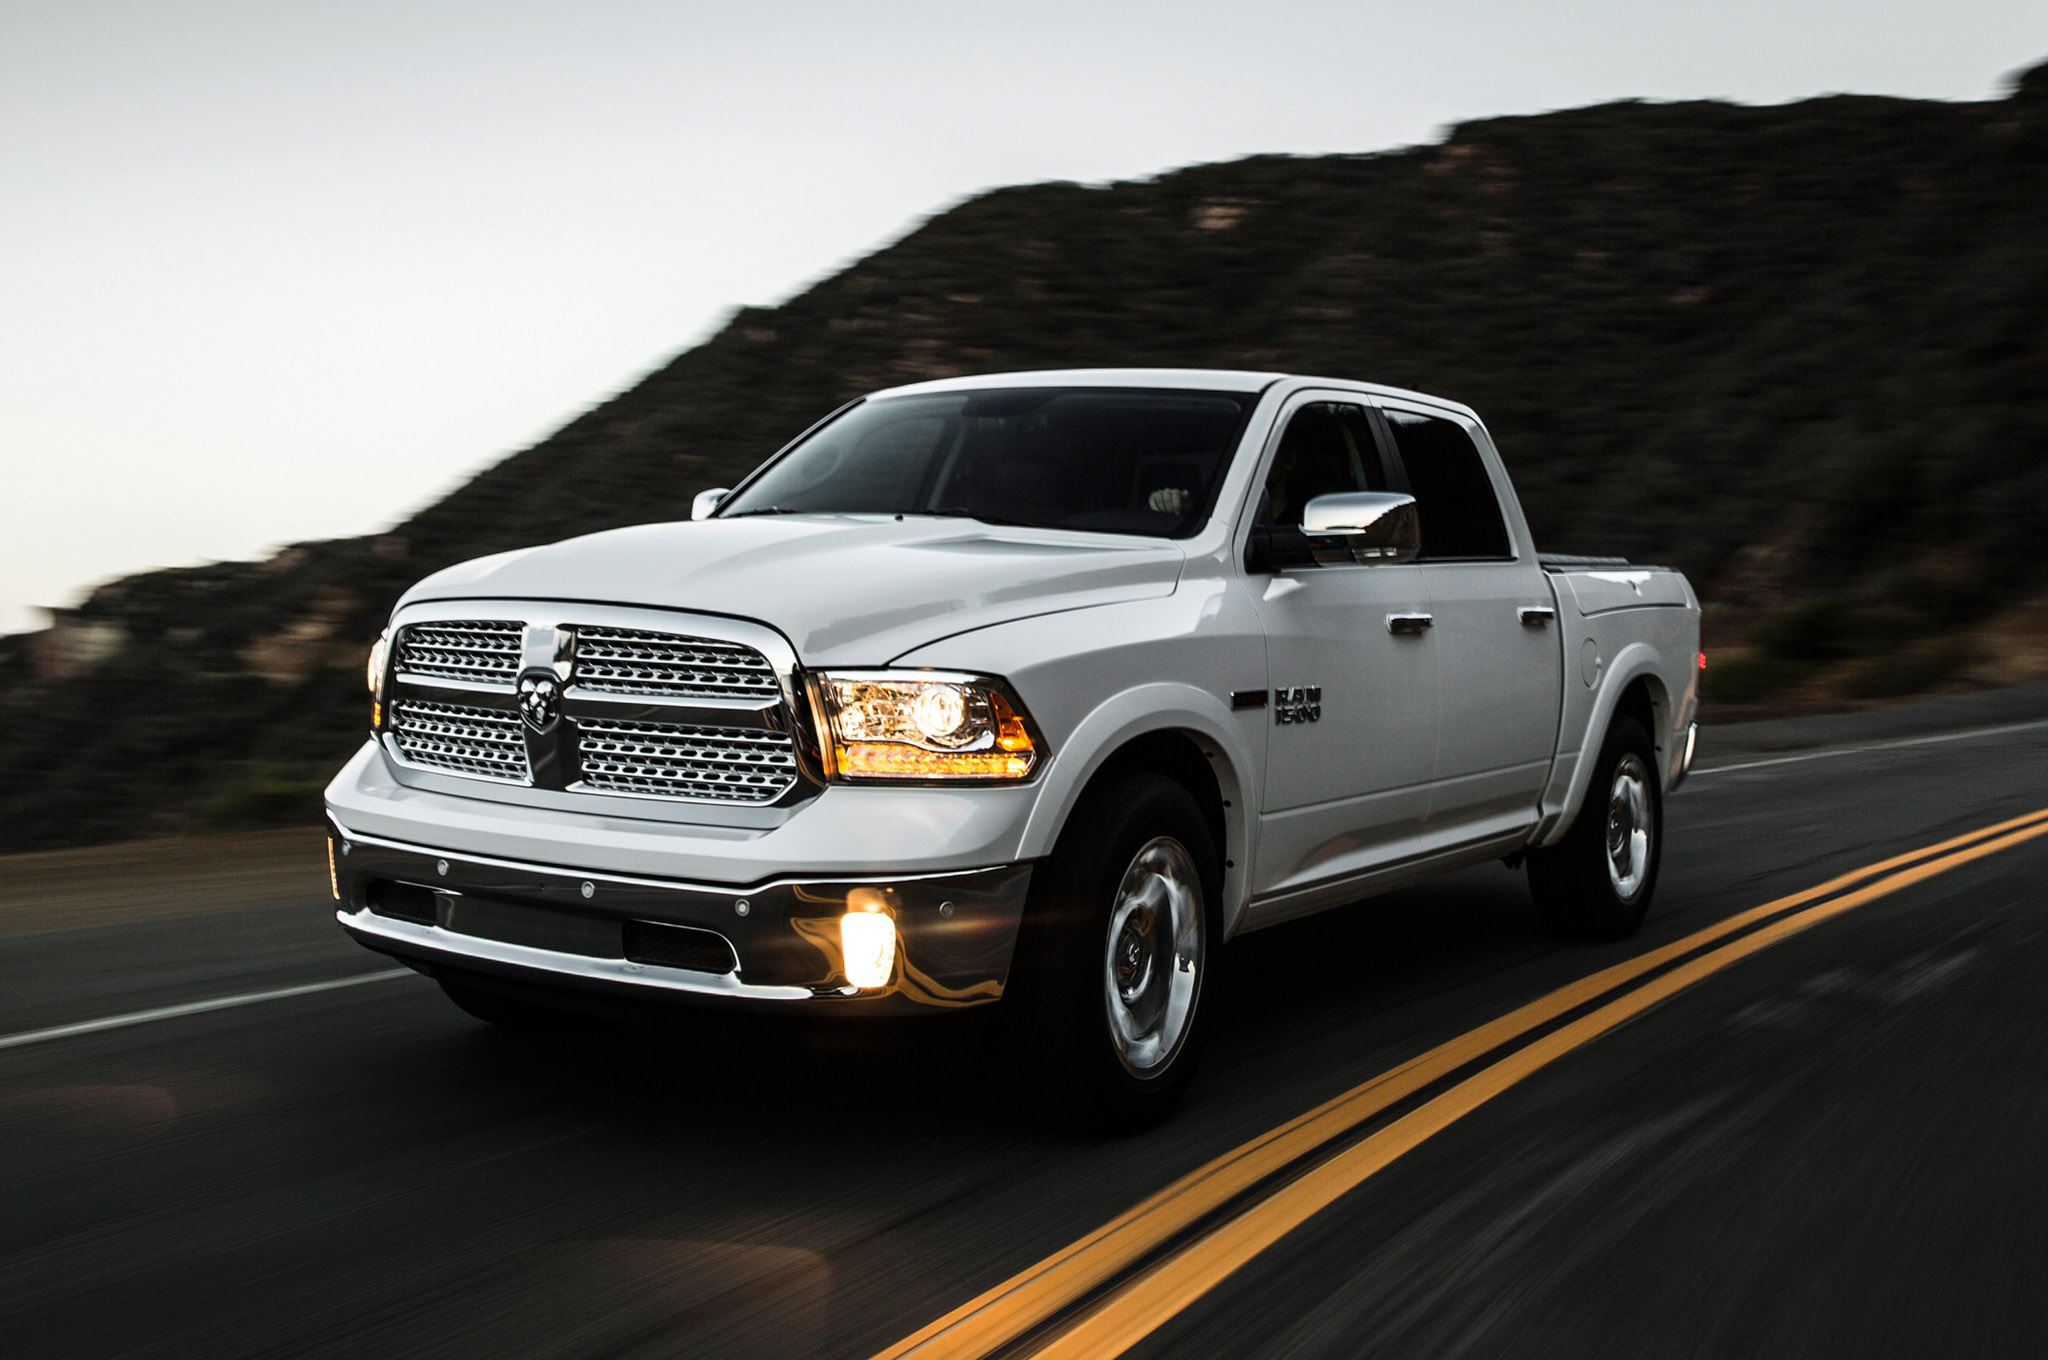 Dodge Ram Ecodiesel For Sale >> 2014 Dodge Ram 1500 EcoDiesel Records Best Fuel Economy Rating